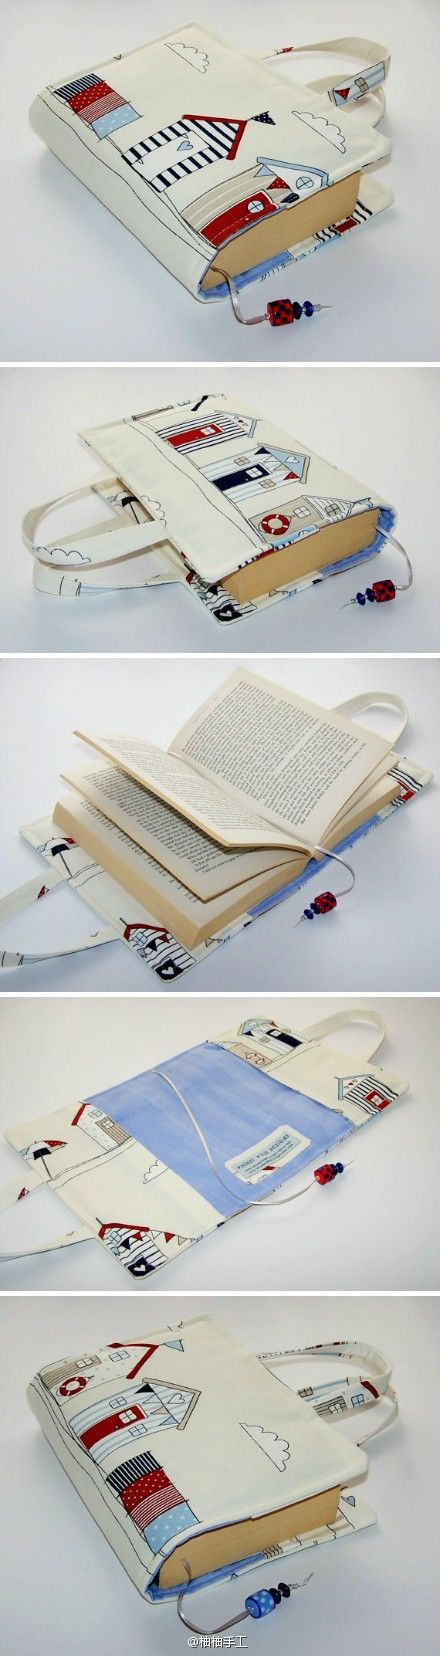 Portable Book Carrier with handle and book mark. Cover of book slip into pockets of carrier. No pattern or instructions on the site, but it does not look too difficult to do just using the image as a guide.